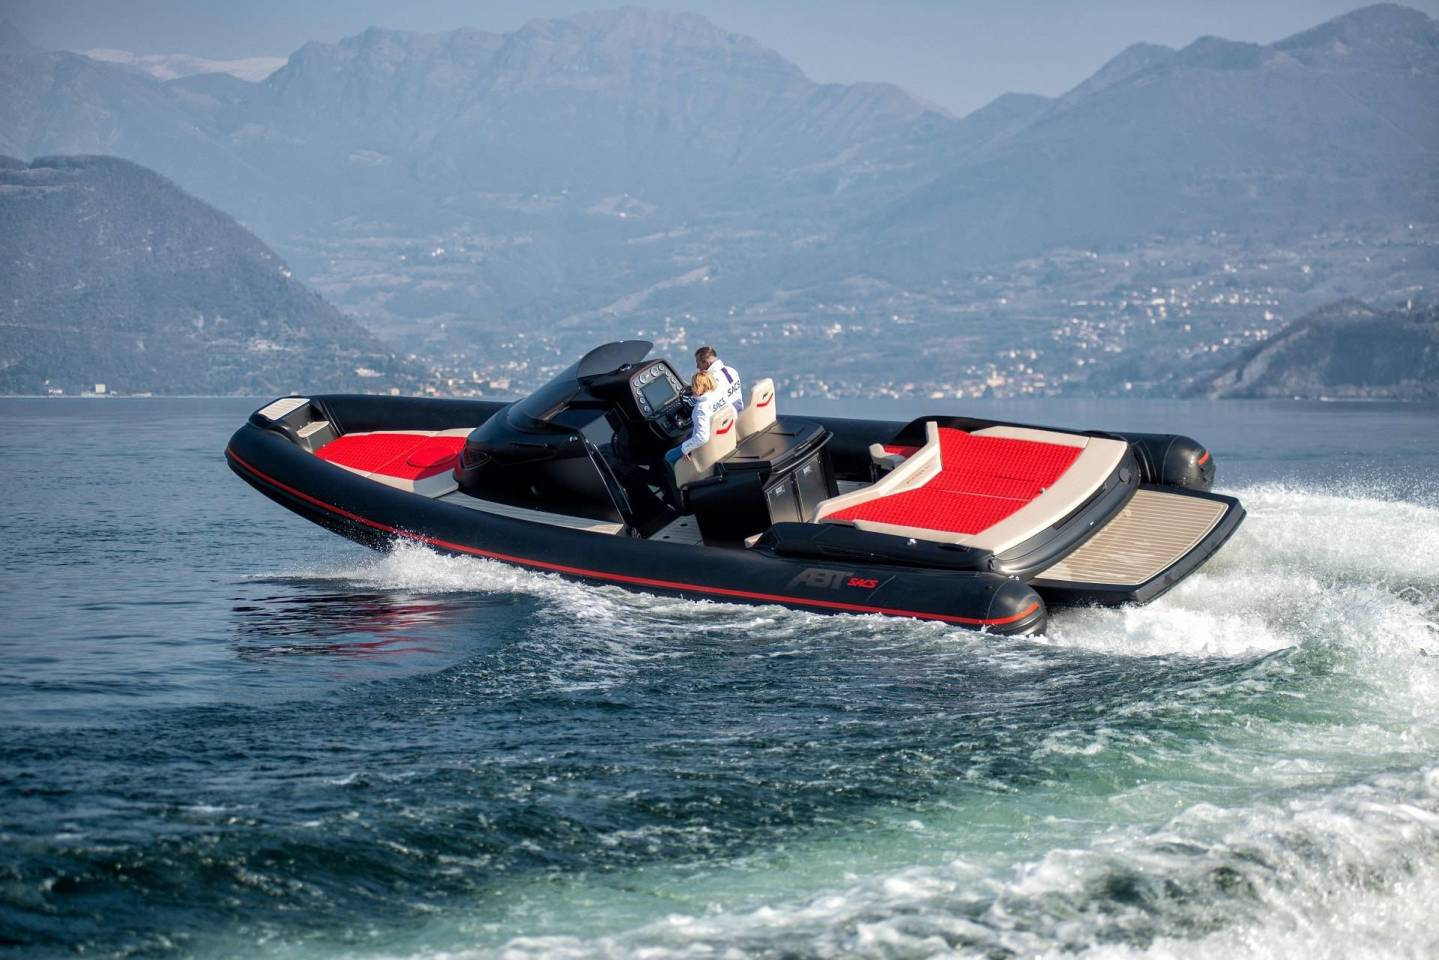 The STRIDER 11 ABT SPORT MASTER LIMITED EDITION is a luxury sports speedboat developed with Italian boat builder SACS.